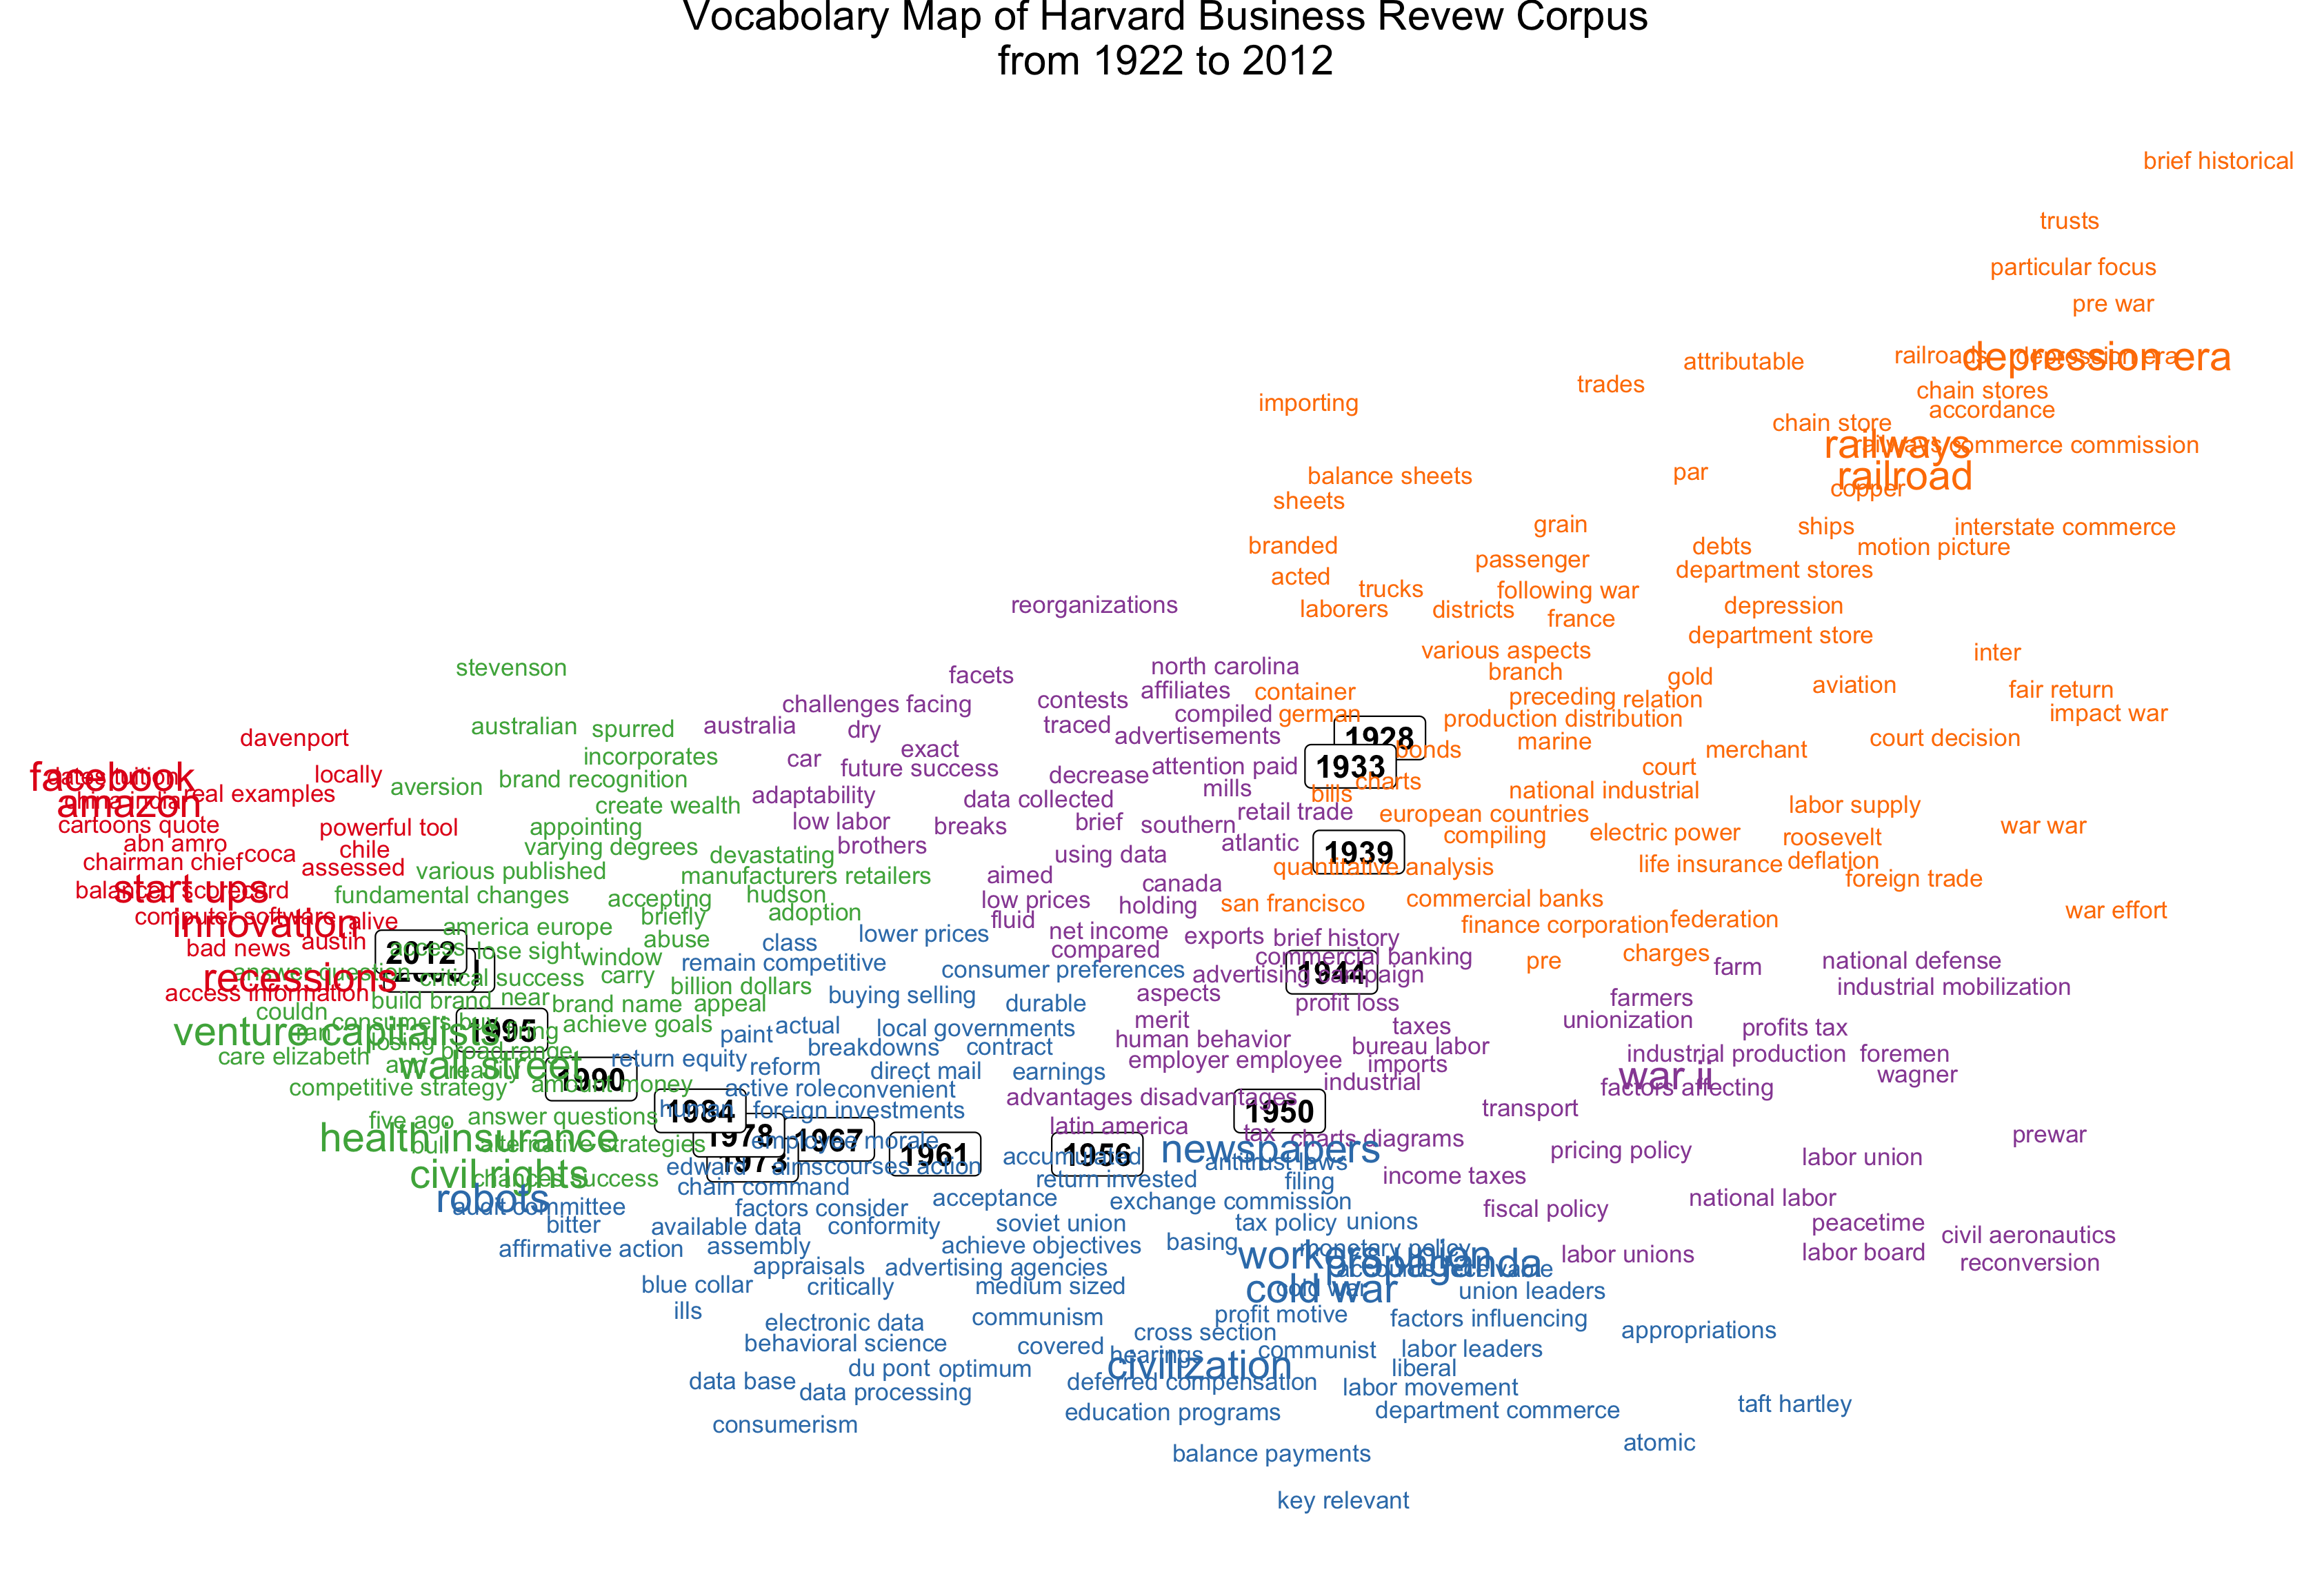 HBR 90 years visualization